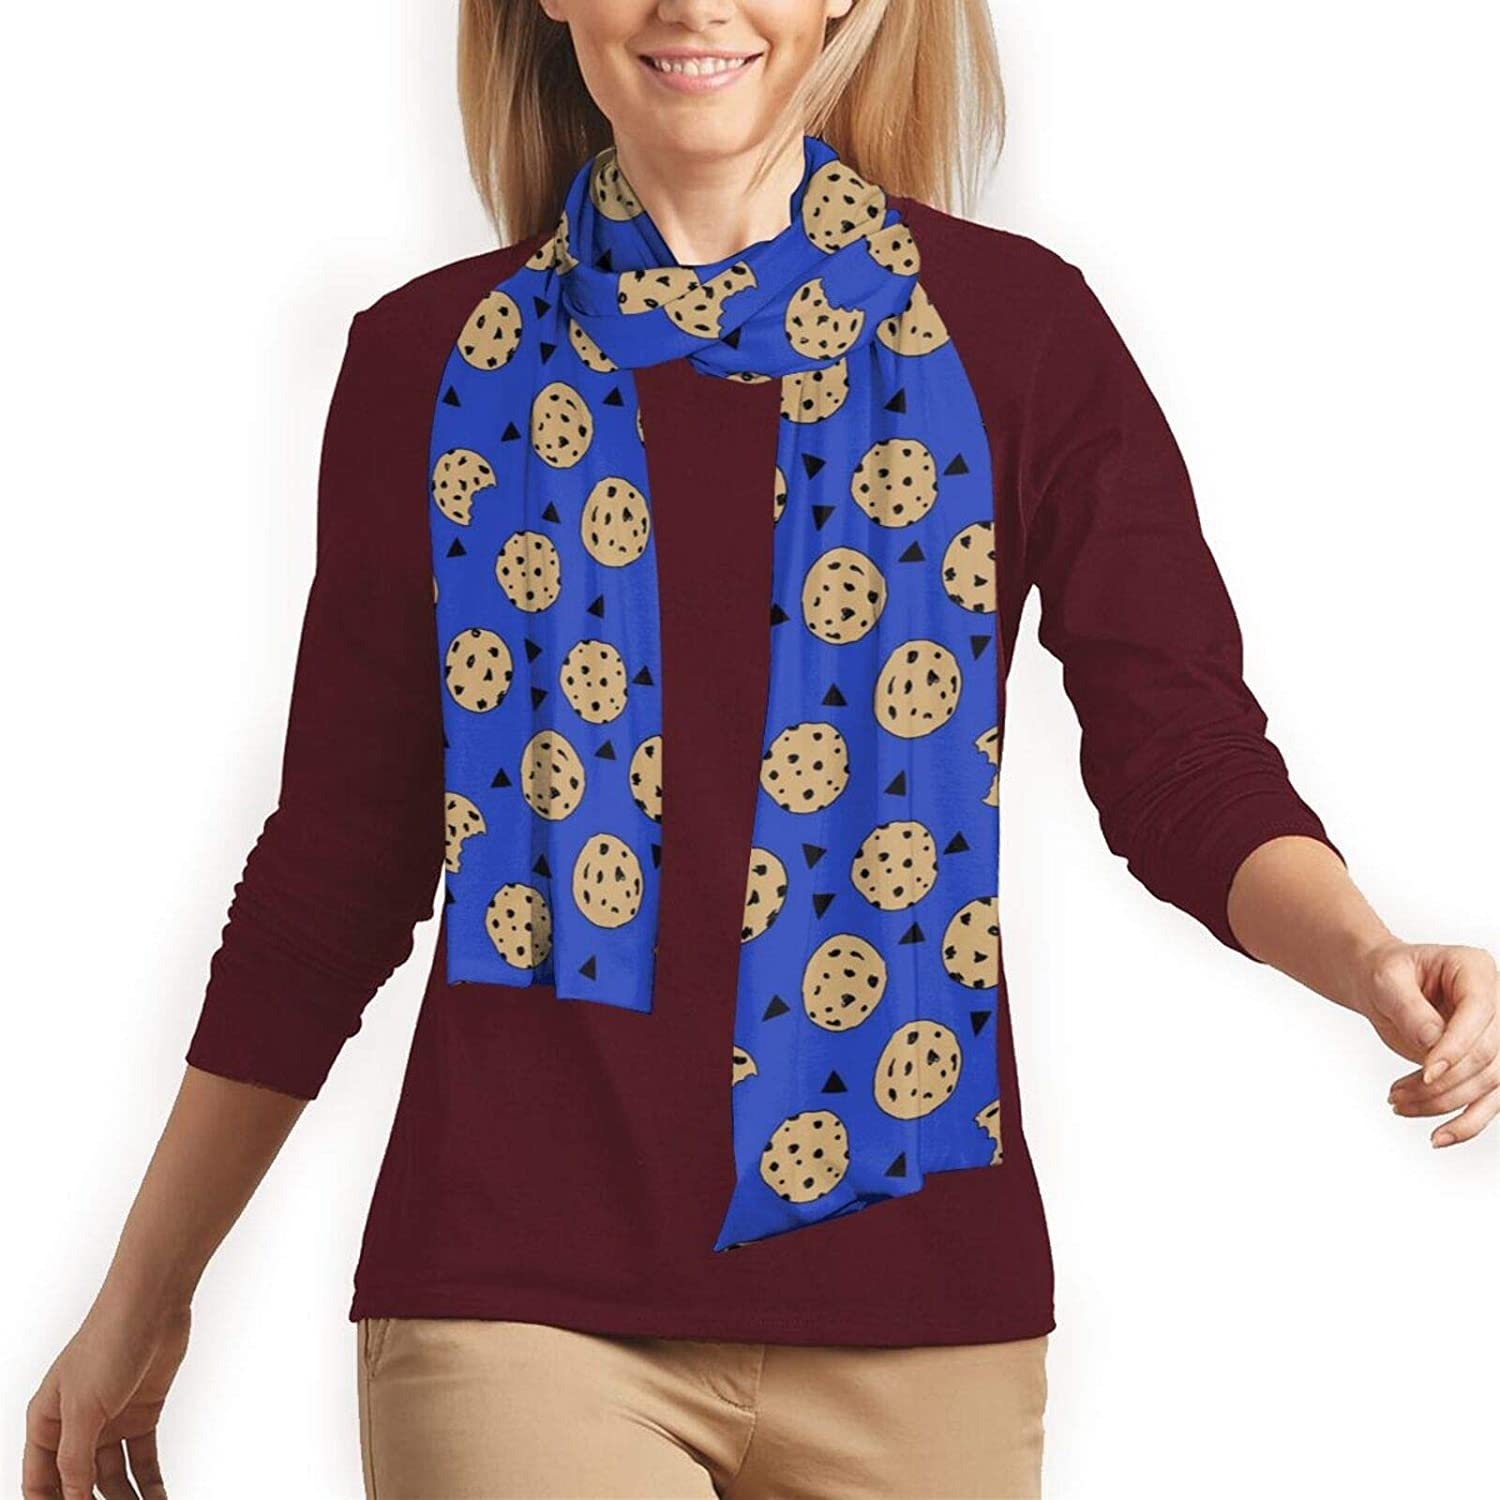 cookies chocolate chip cookie monster Scarf for Men and Women Warm Soft Luxurious Classic Long Scarves for Fall Winter